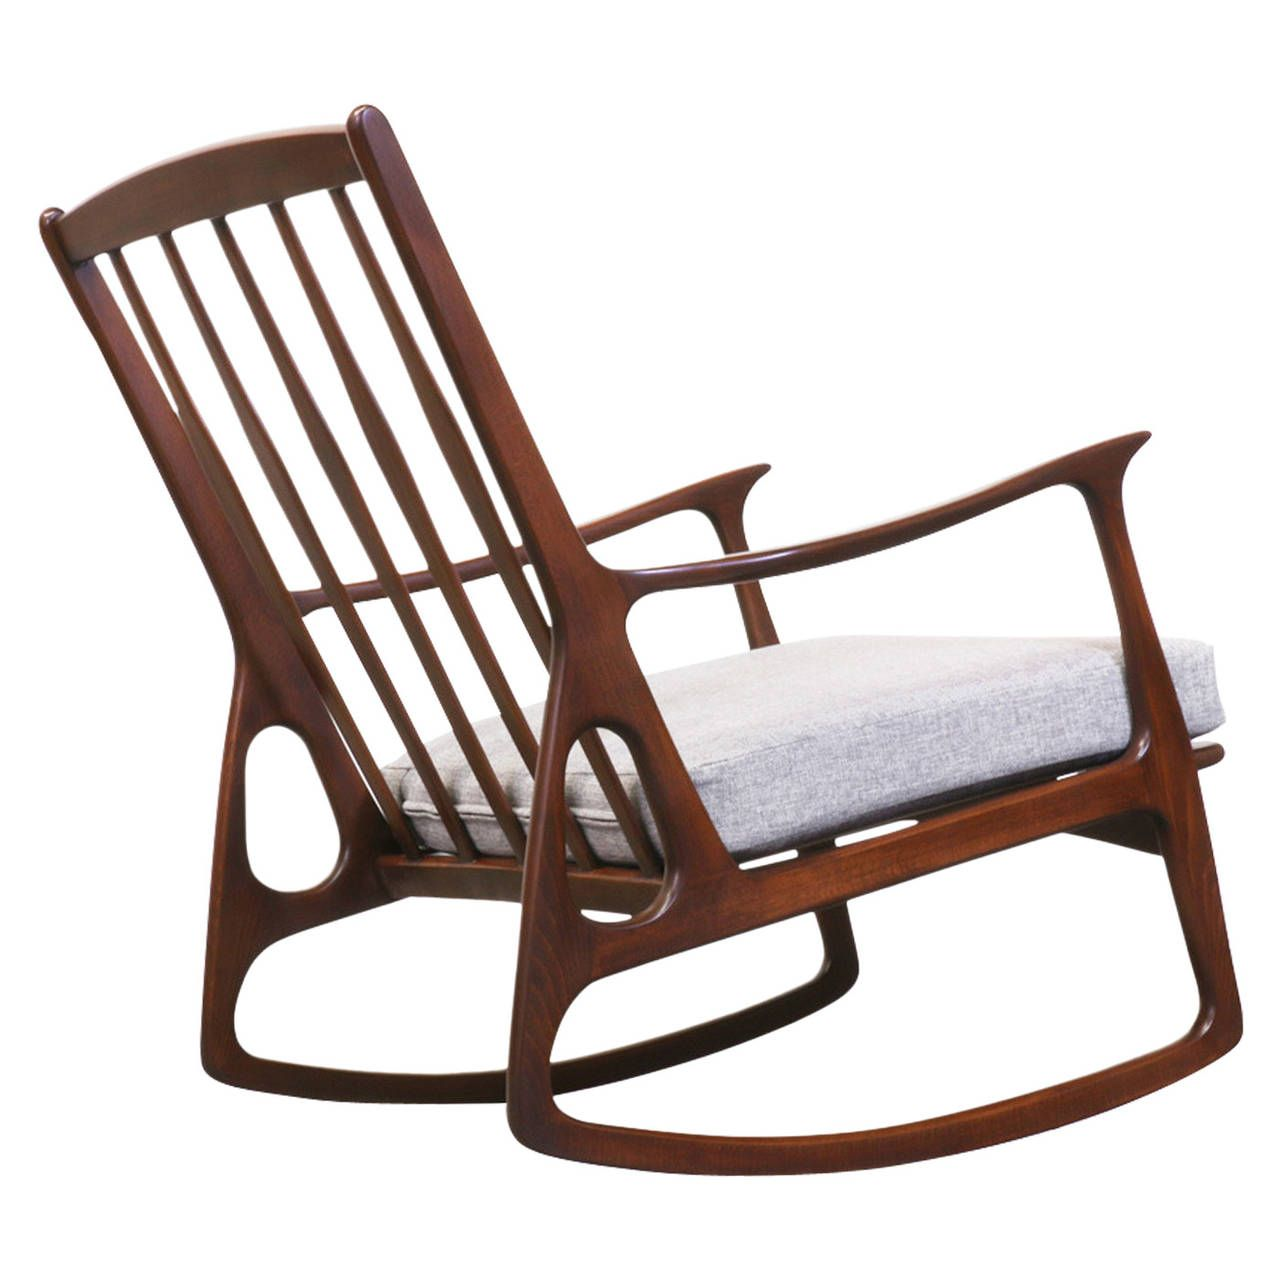 Midcentury Italian Walnut Rocking Chair | From a unique collection of antique and modern rocking chairs at ...  sc 1 st  Pinterest & Midcentury Italian Walnut Rocking Chair | chairs | Pinterest ...